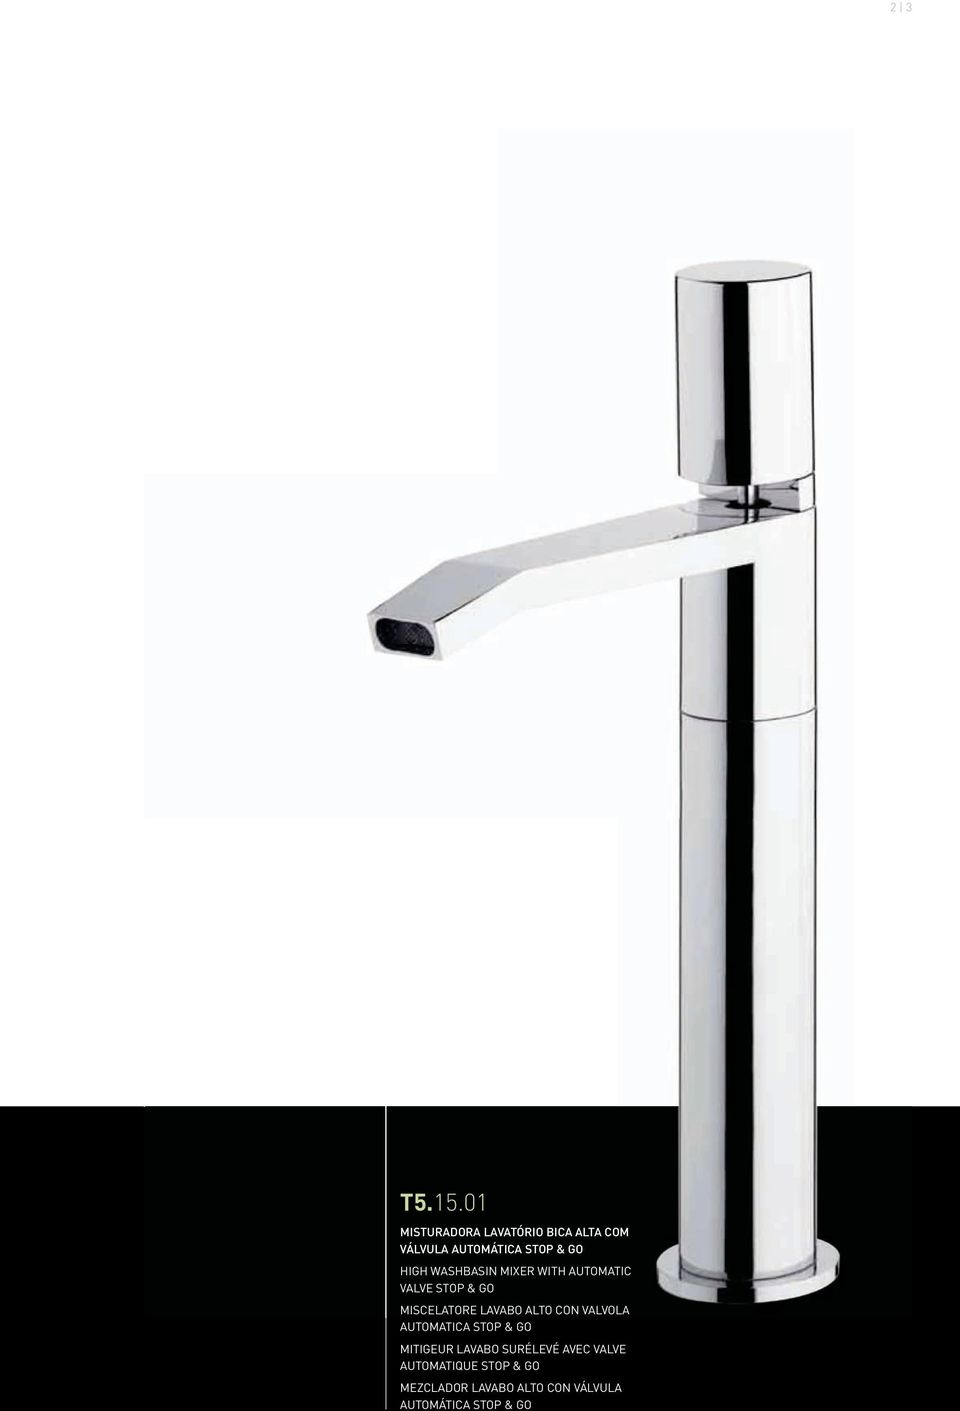 WASHBASIN MIXER WITH AUTOMATIC VALVE STOP & GO MISCELATORE LAVABO ALTO CON